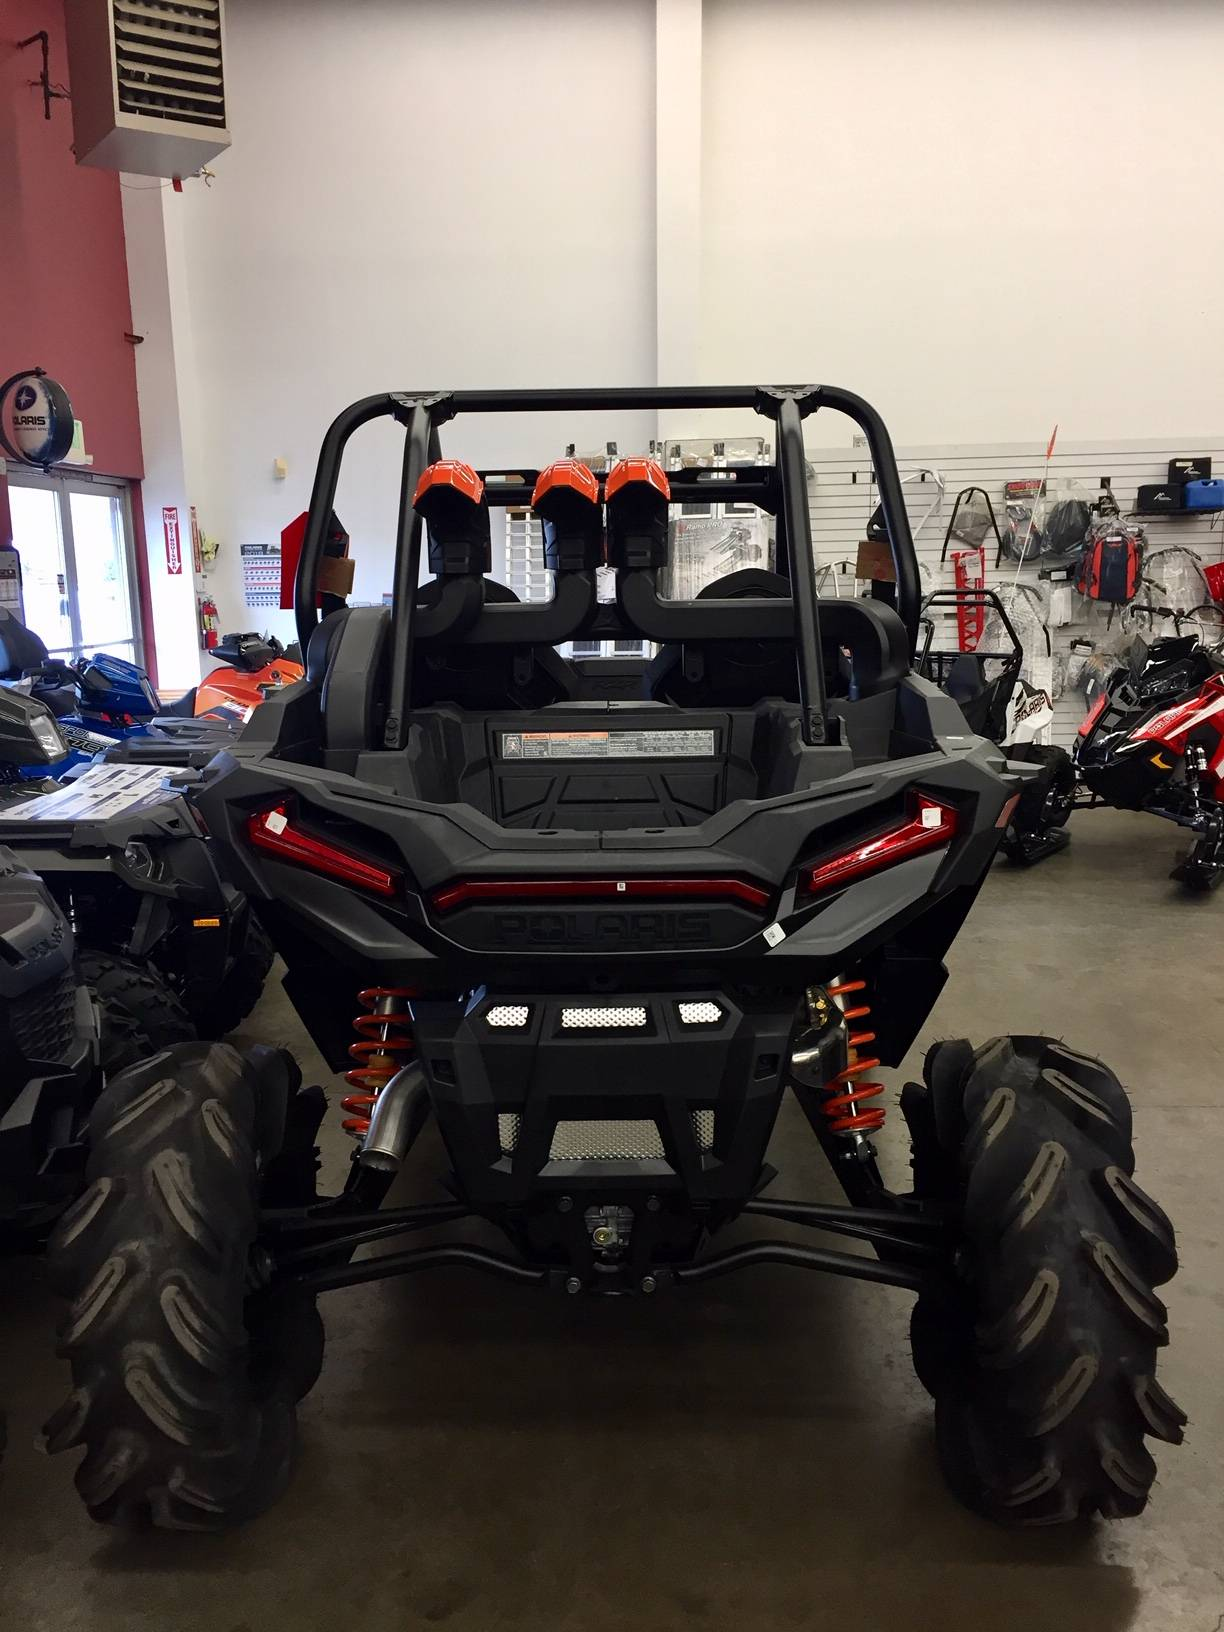 2019 Polaris RZR XP 1000 High Lifter in Monroe, Washington - Photo 4